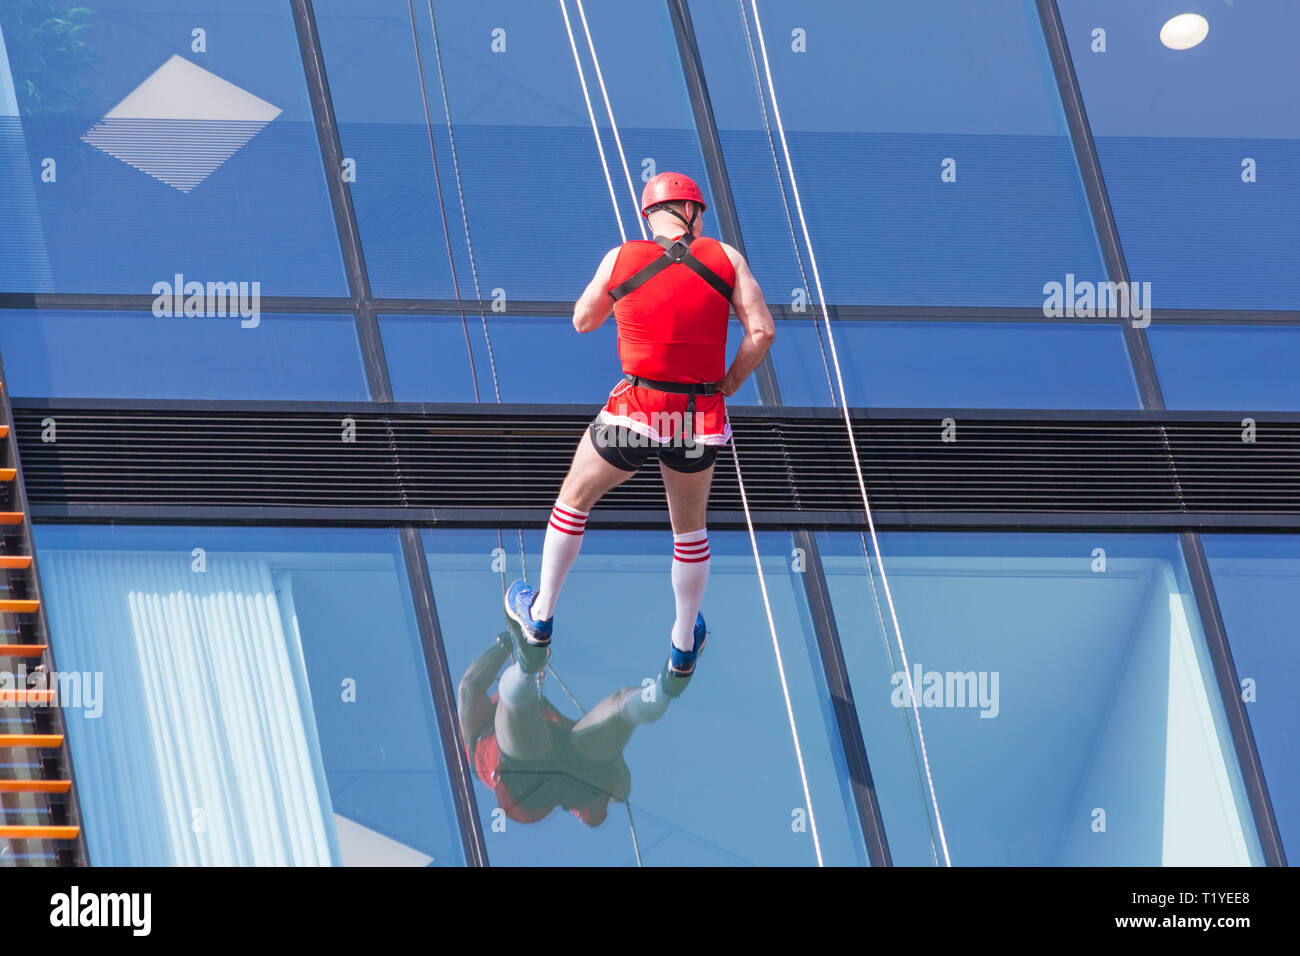 Bournemouth, Dorset, UK. 29th Mar, 2019. Staff working for telecommunications provider 4Com abseil down their new office building at One Lansdowne Plaza in Bournemouth which is 100ft high. They are raising funds for Hope Housing and Hope AOK Rucksack Appeal who provide support to homeless in Bournemouth. A lovely warm sunny day for the descent! Man abseils down. Credit: Carolyn Jenkins/Alamy Live News - Stock Image